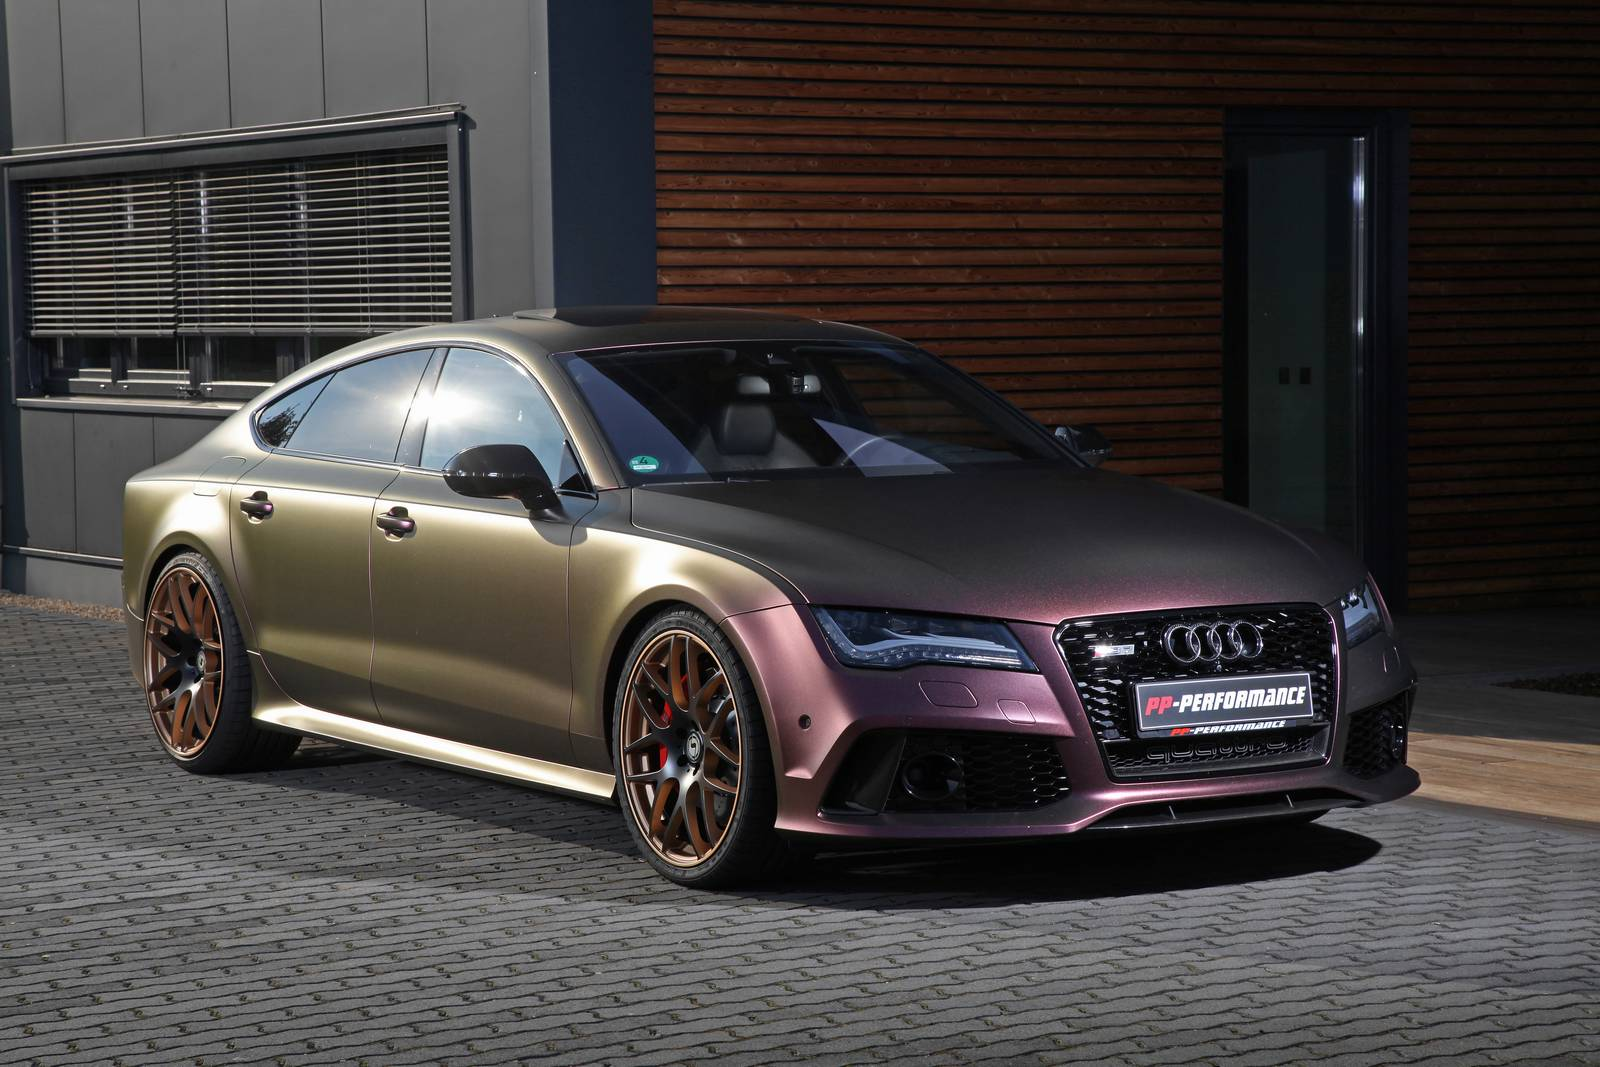 sparkling berry wrapped audi rs7 with 745hp by pp performance gtspirit rh gtspirit com Top Gear Audi RS7 Top Gear Audi RS7